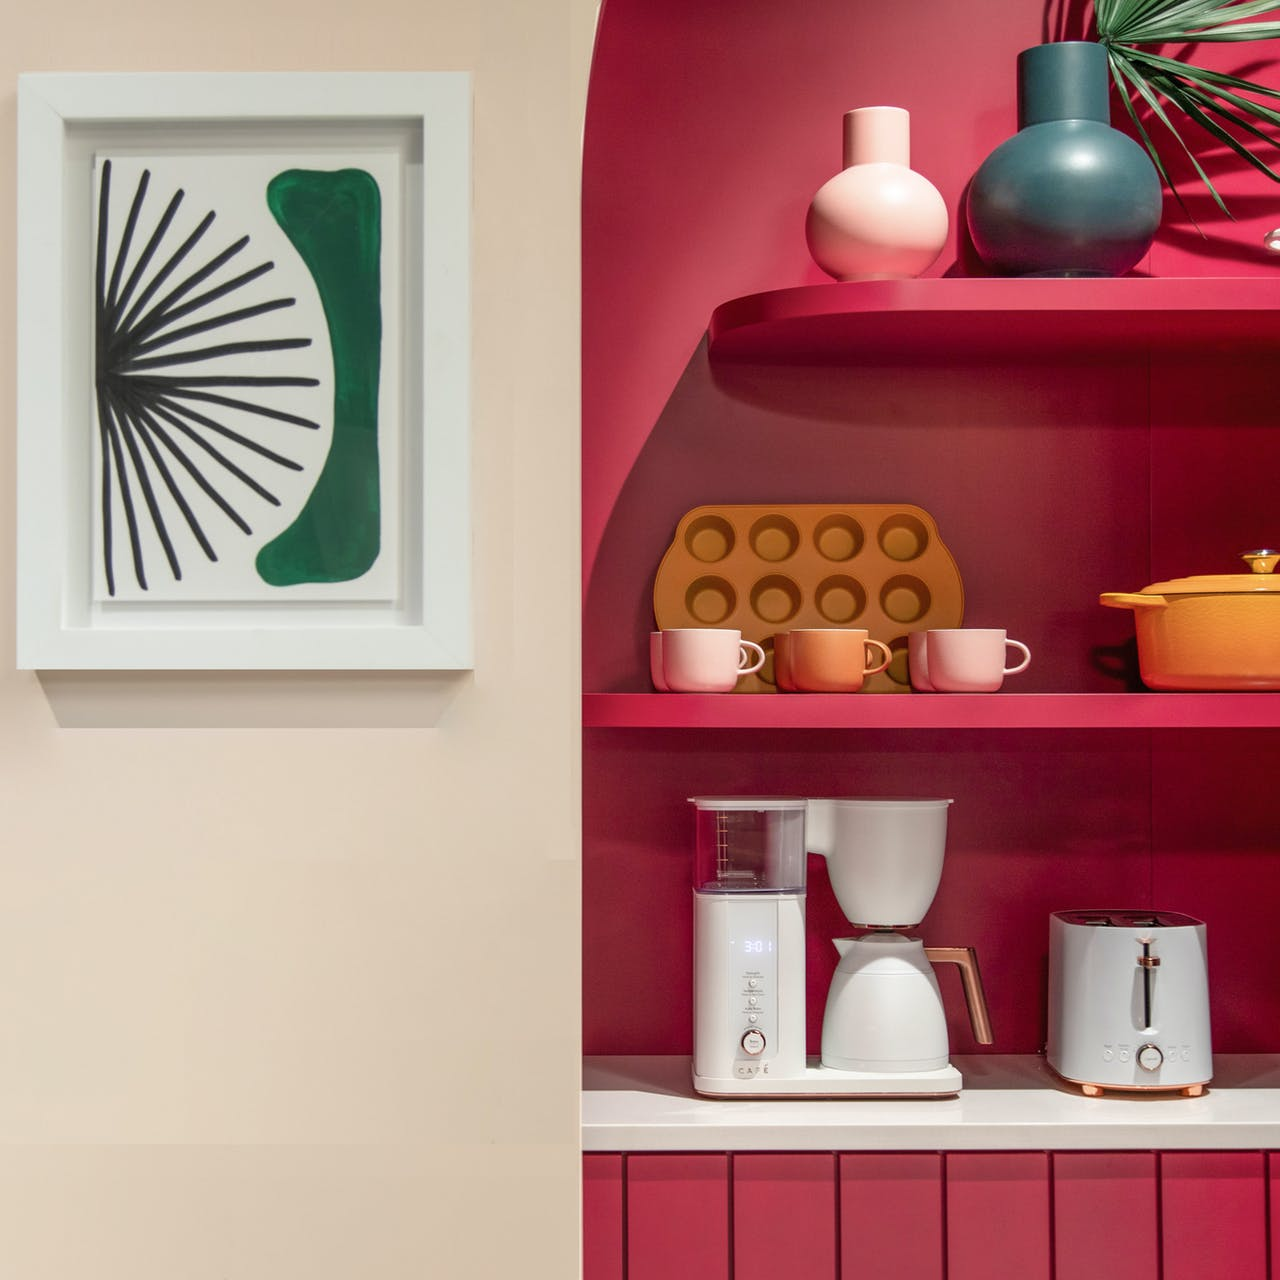 pink wall with cafe coffee maker and toaster in matte white